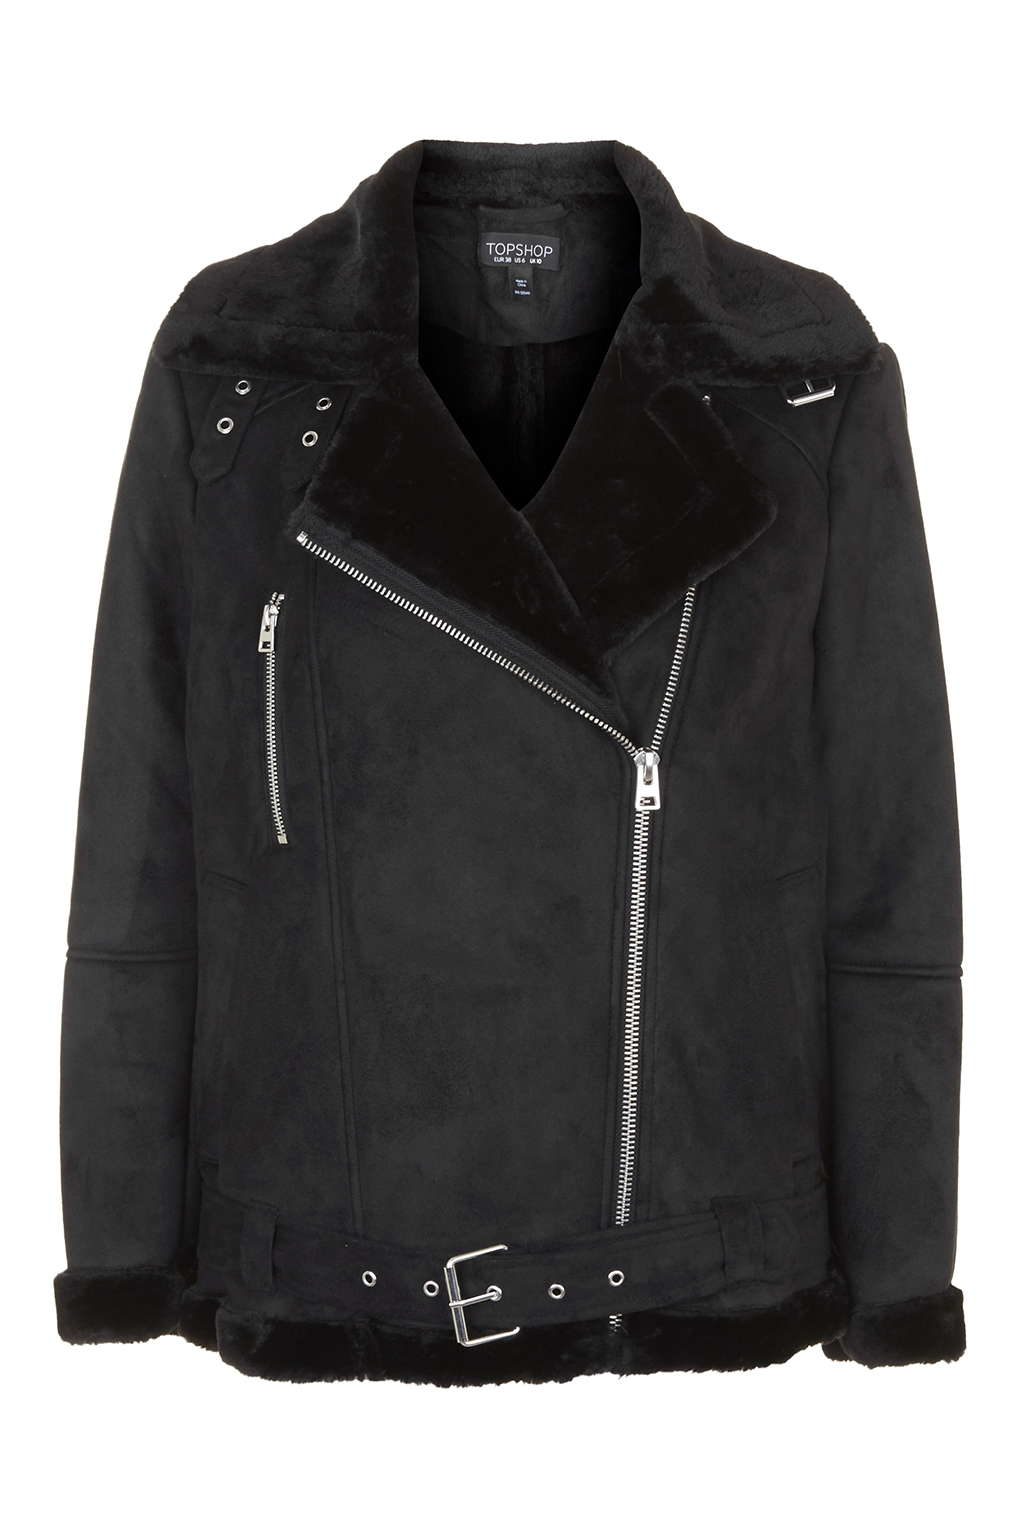 Topshop tall leather jacket